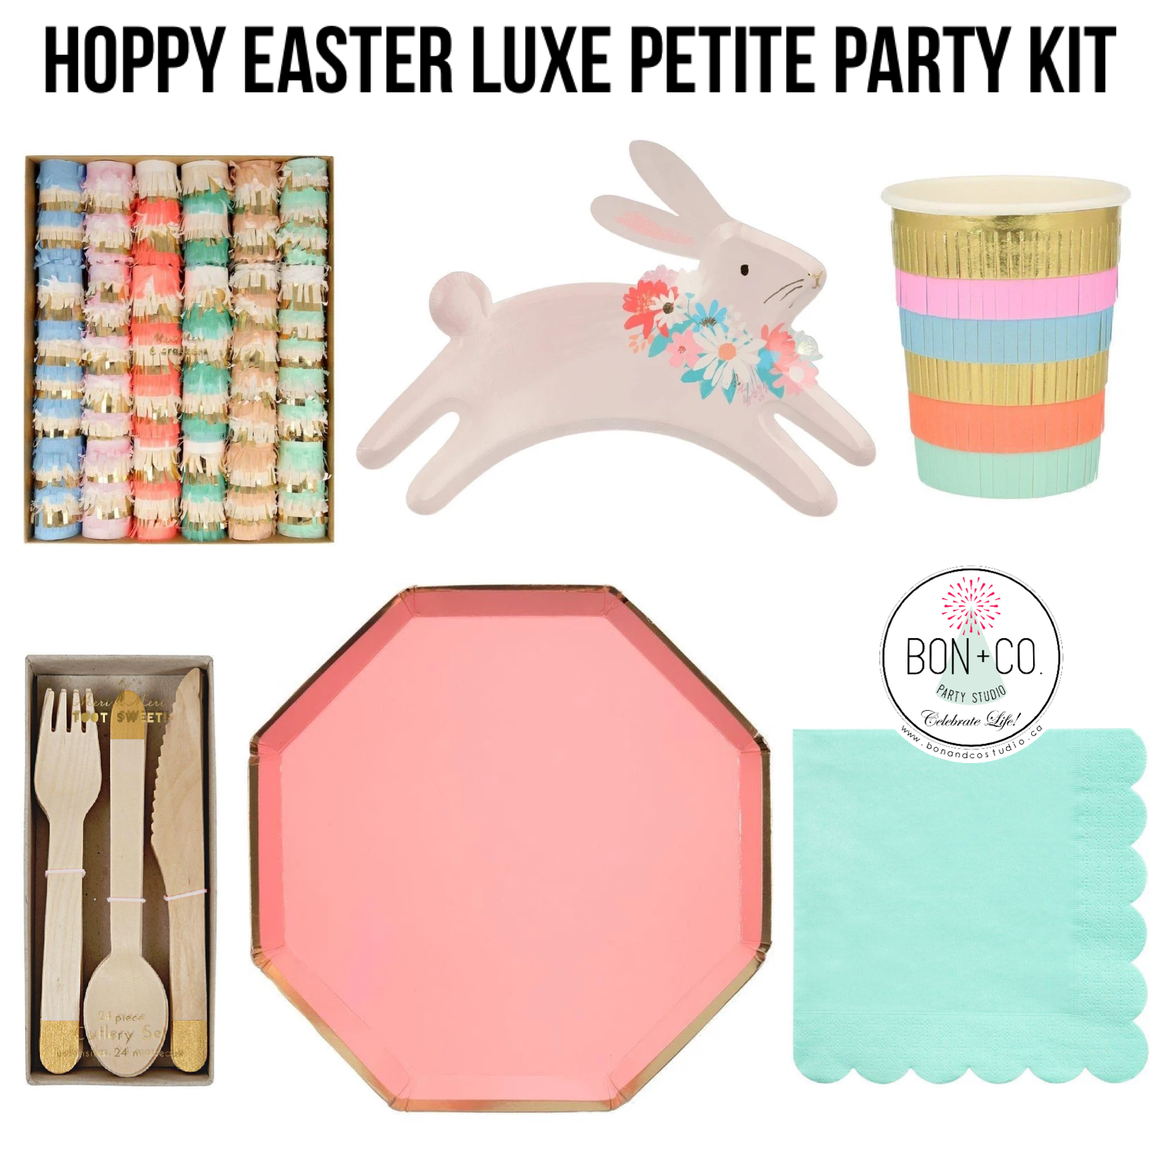 LUXE PETITE PARTY KIT - HOPPY EASTER